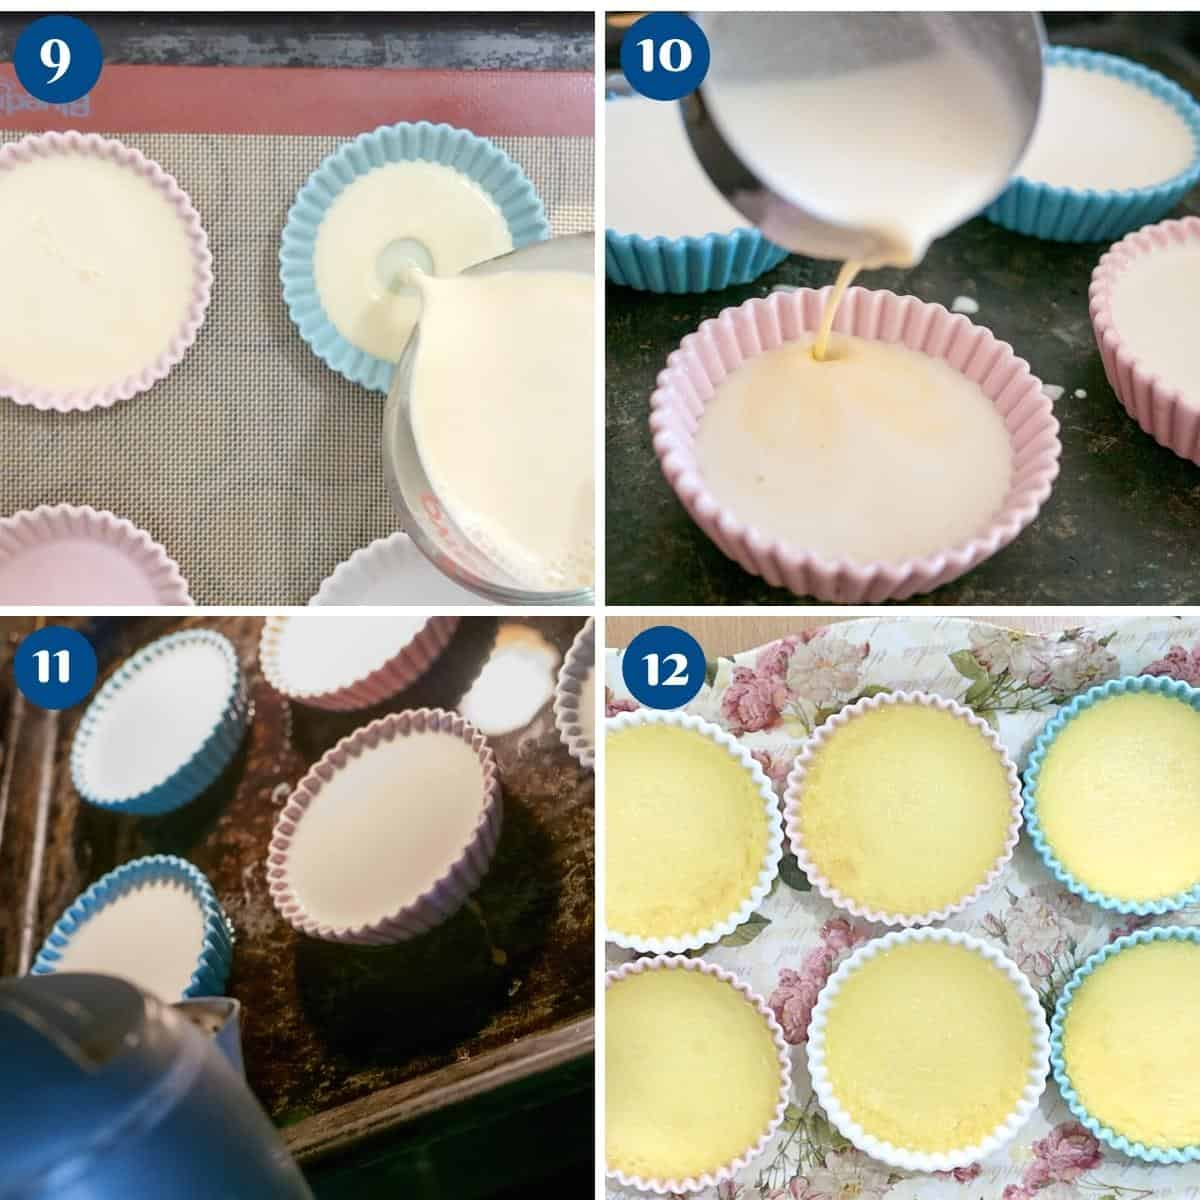 Progress pictures pouring custard in ramekins for creme brulee.